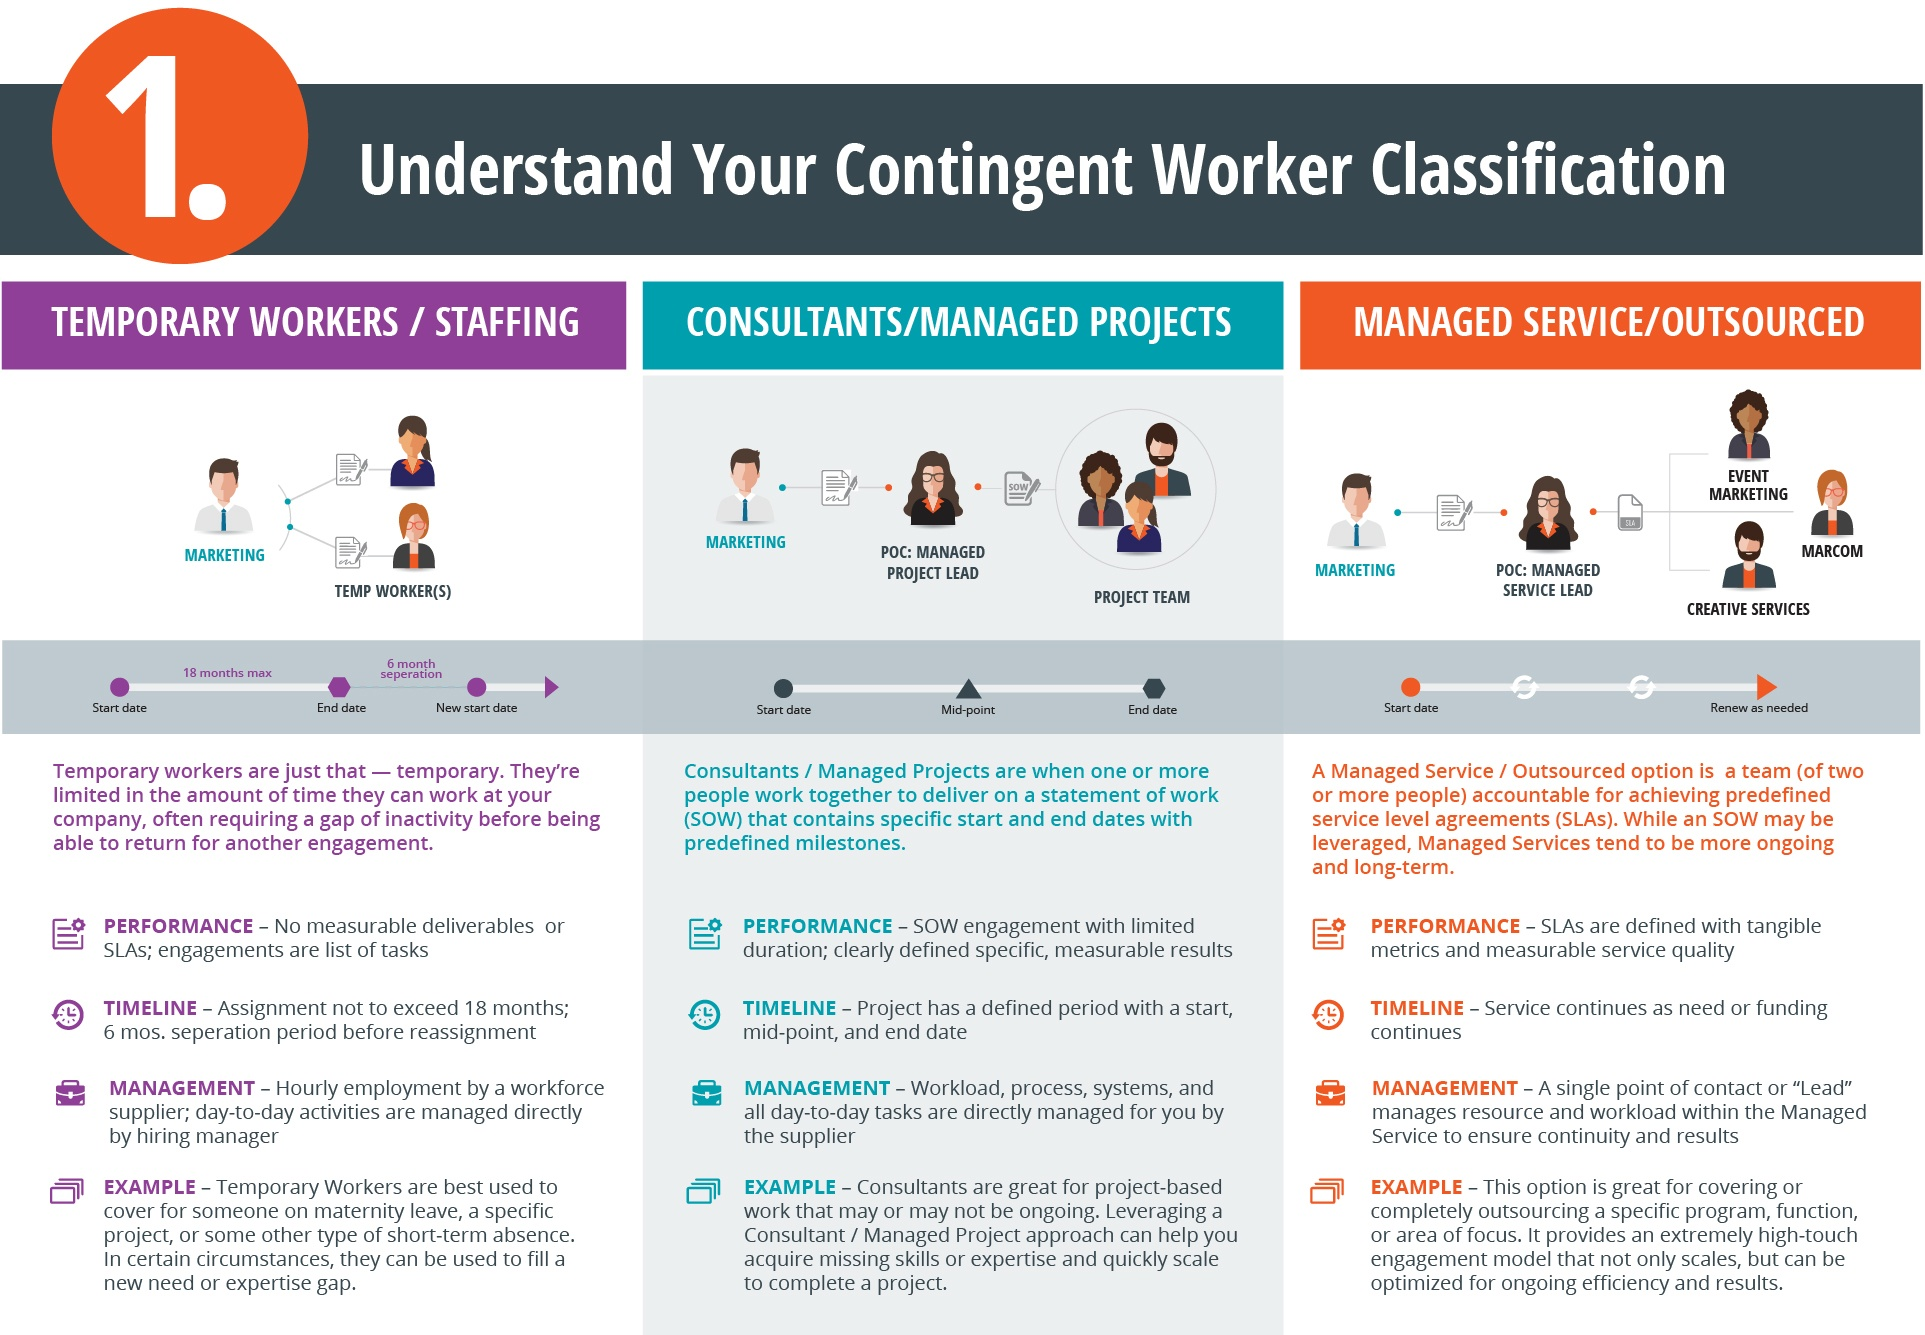 Contingent worker classification includes temporary workers / staffing; consultants / managed projects, and managed service / outsourcing.